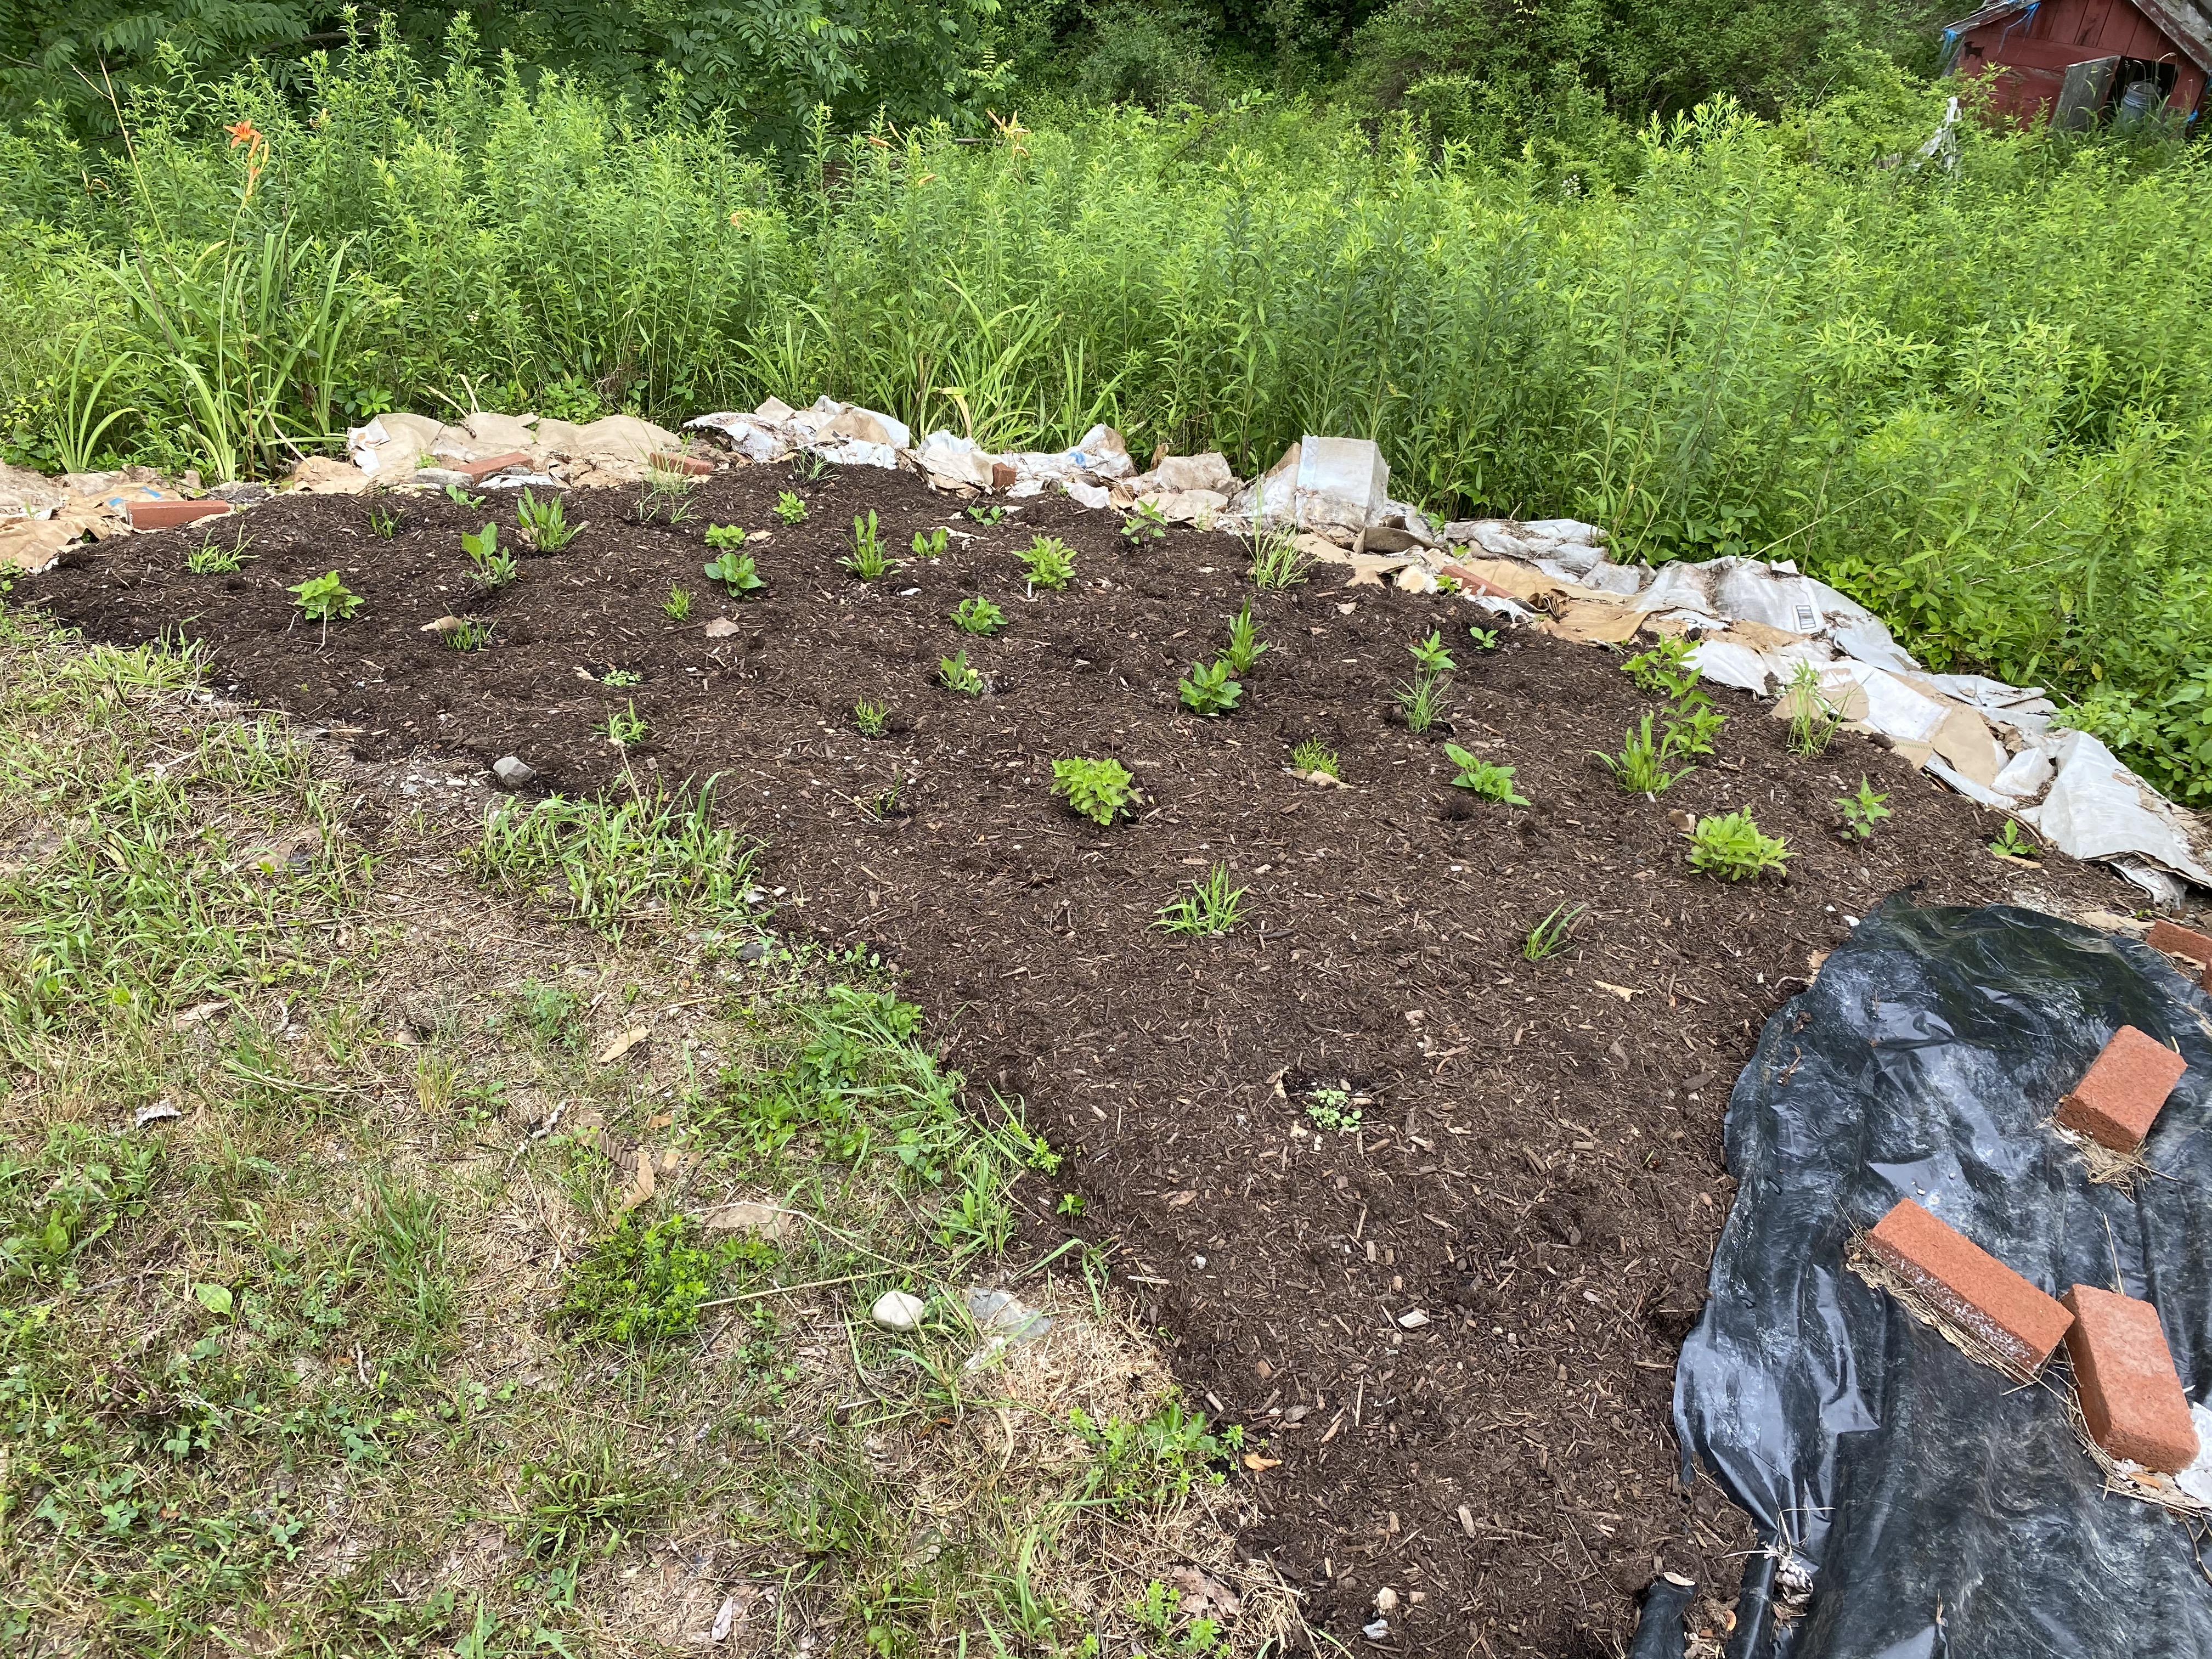 Freshly planted and mulched area of the garden